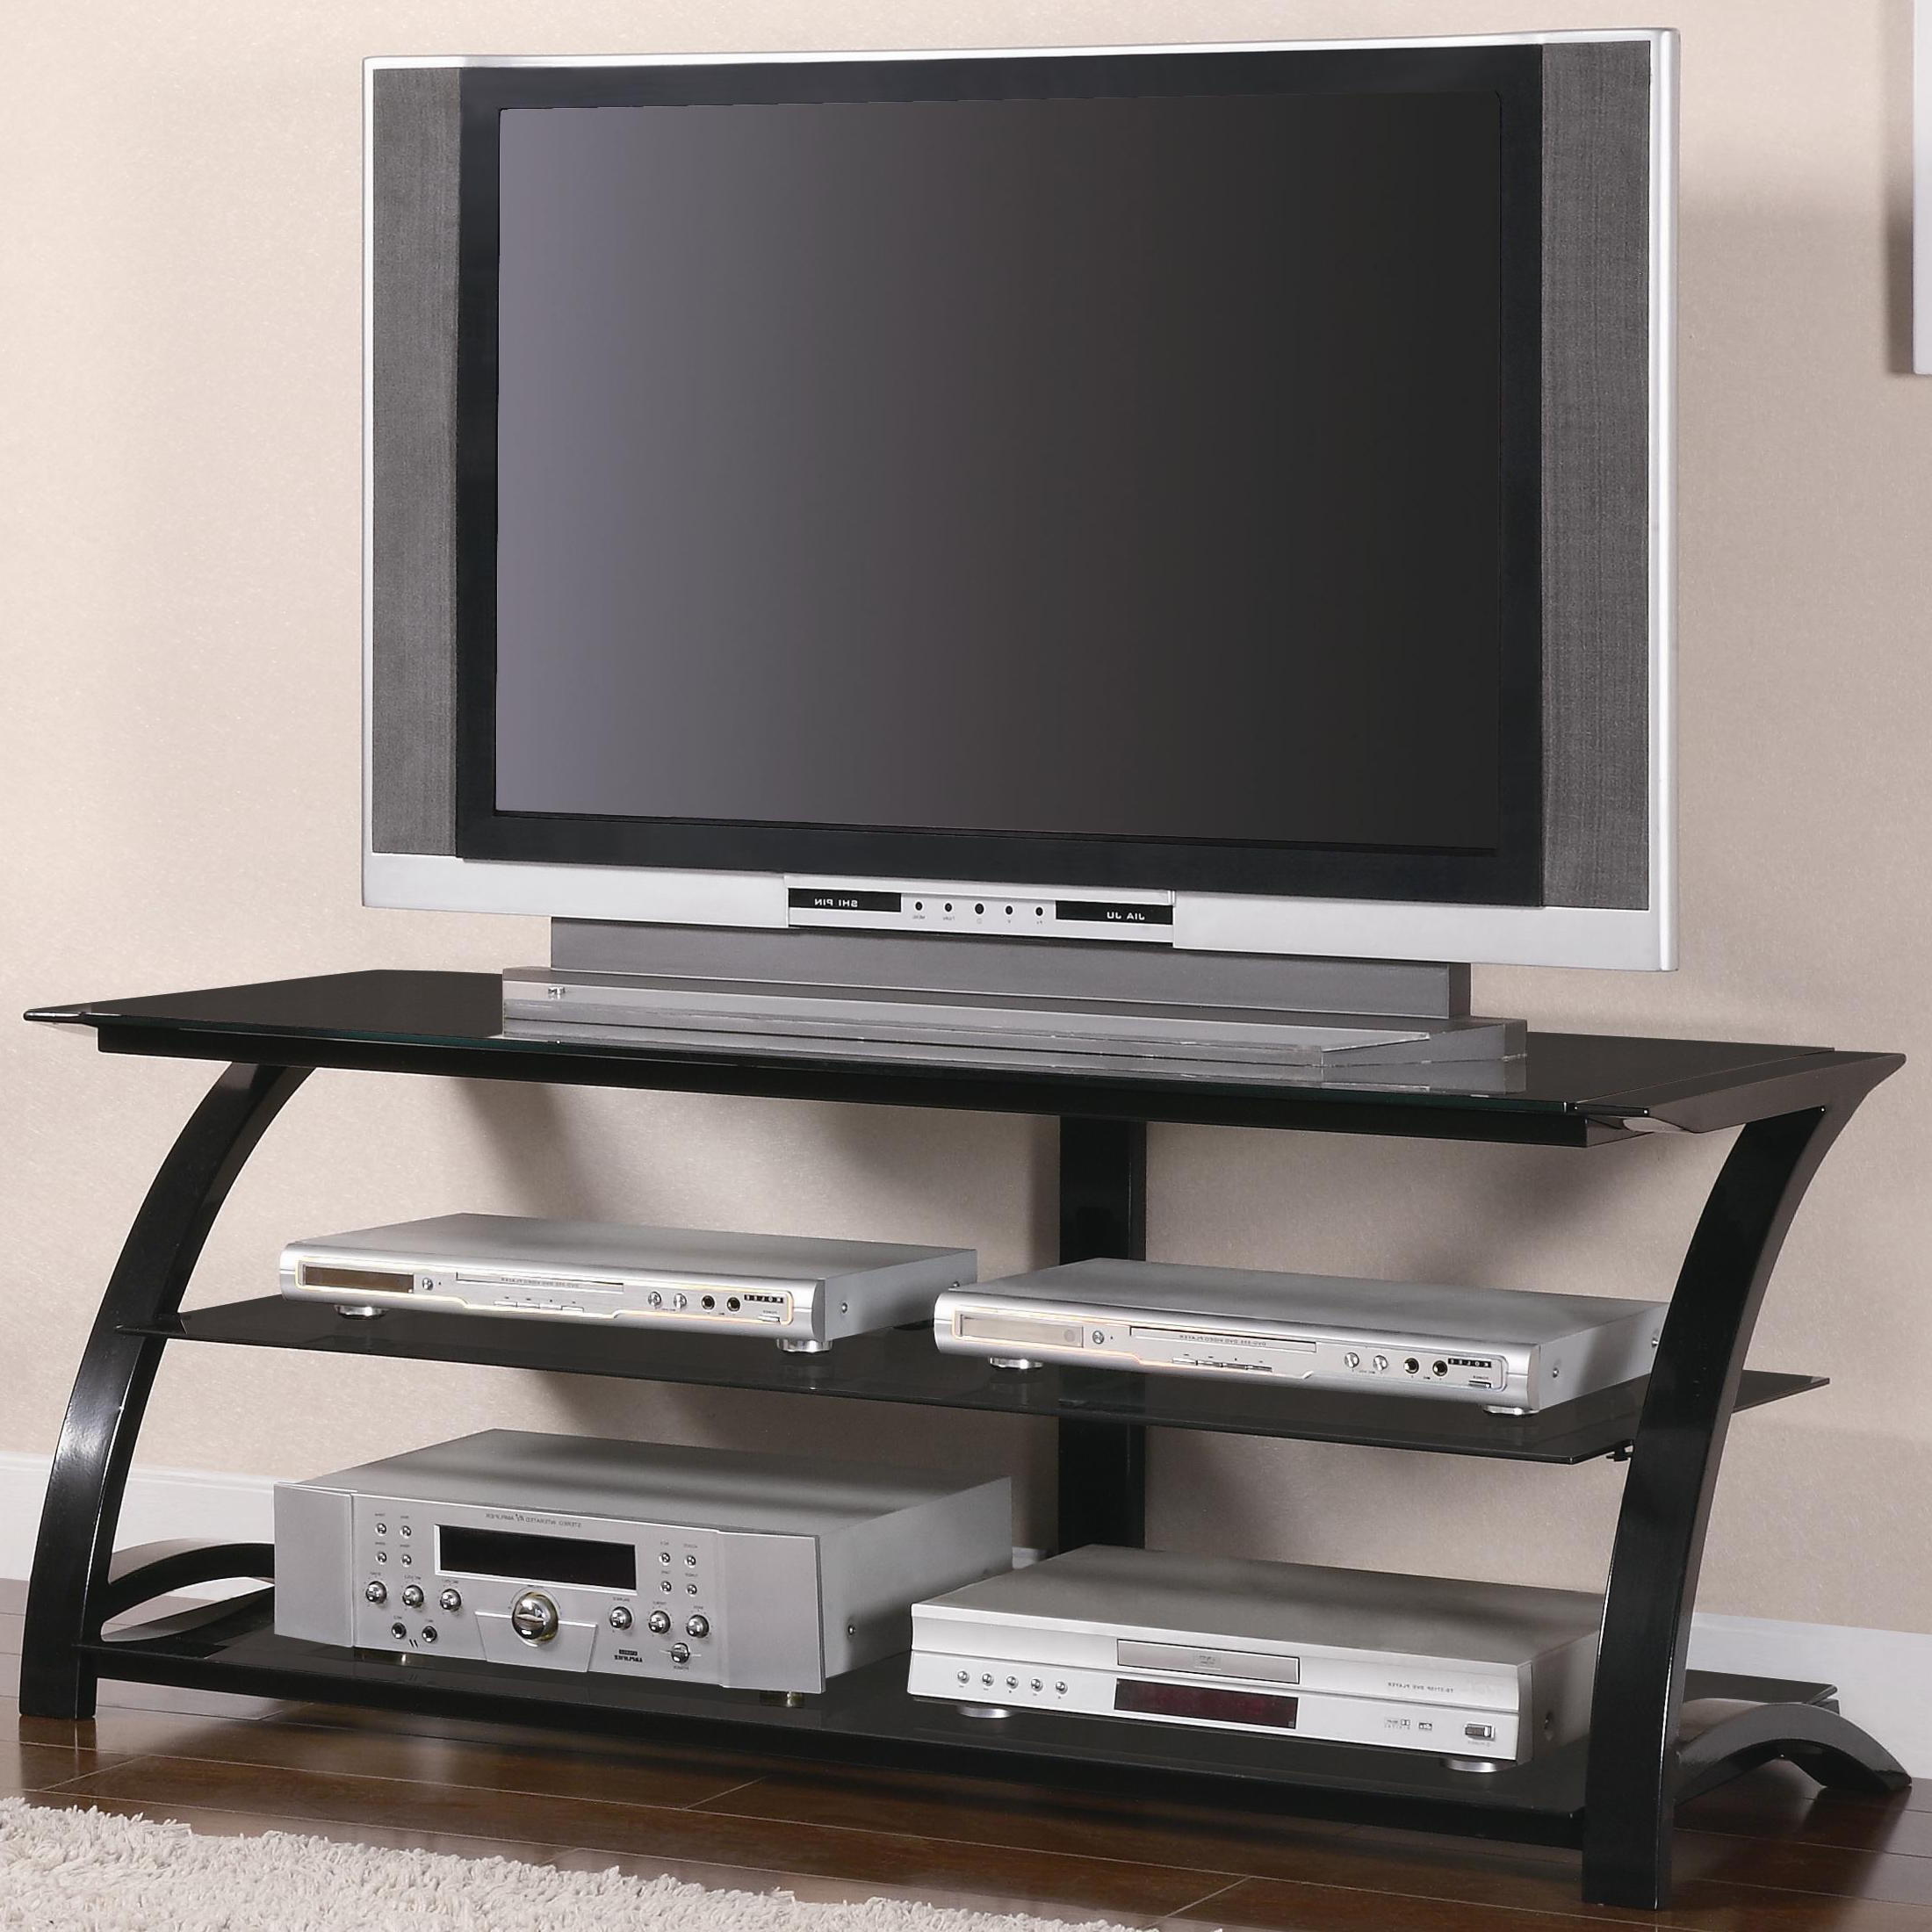 Most Recent Coaster Tv Stands 700664 Contemporary Metal And Glass Media Console Regarding Tv With Stands (View 12 of 20)